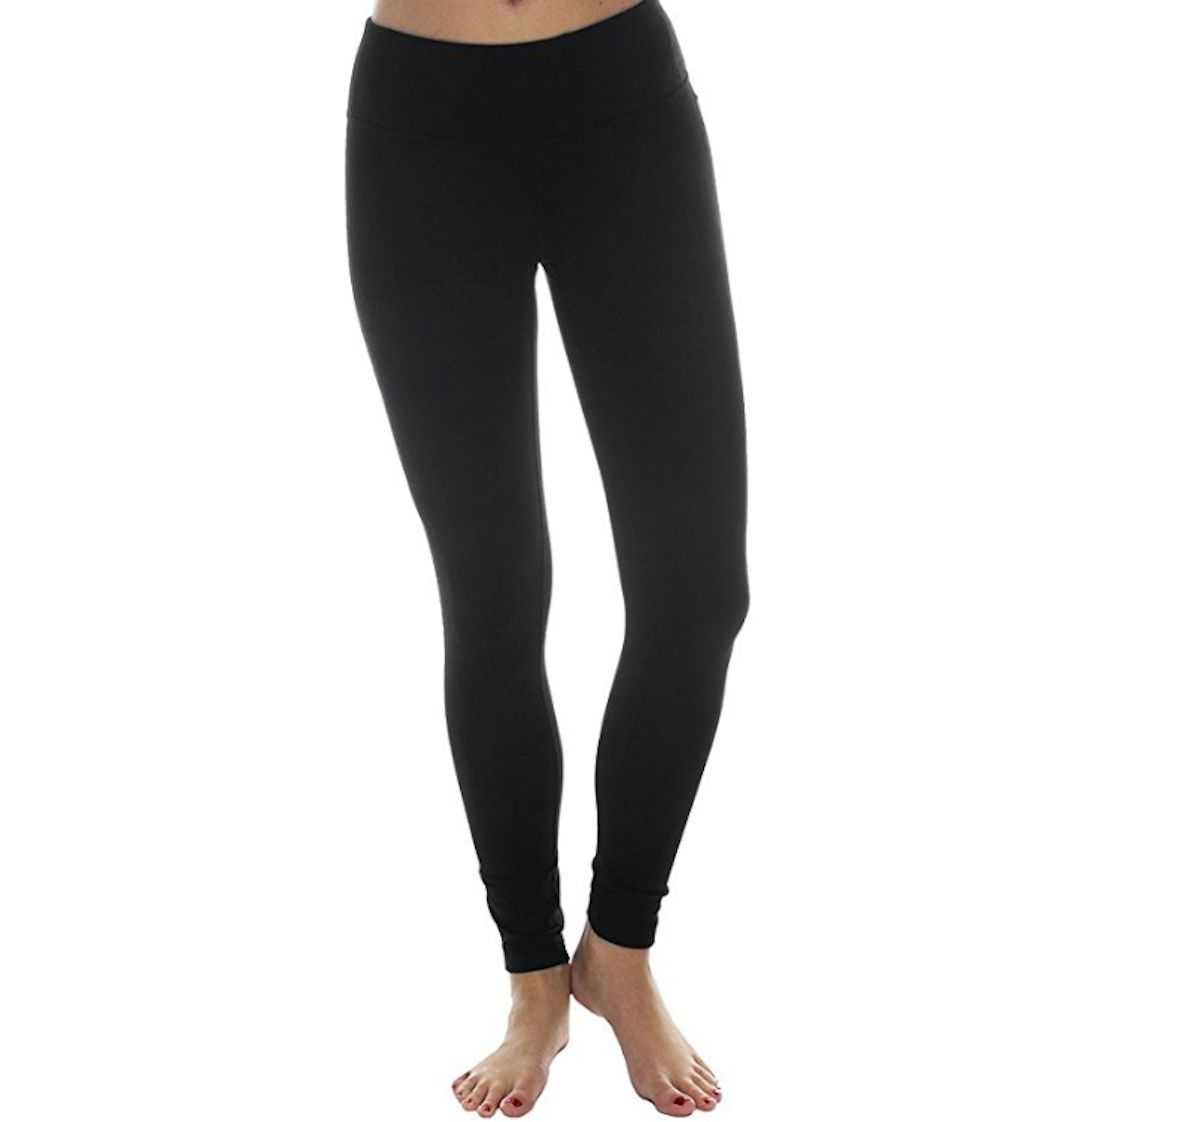 Black Leggings Amazon